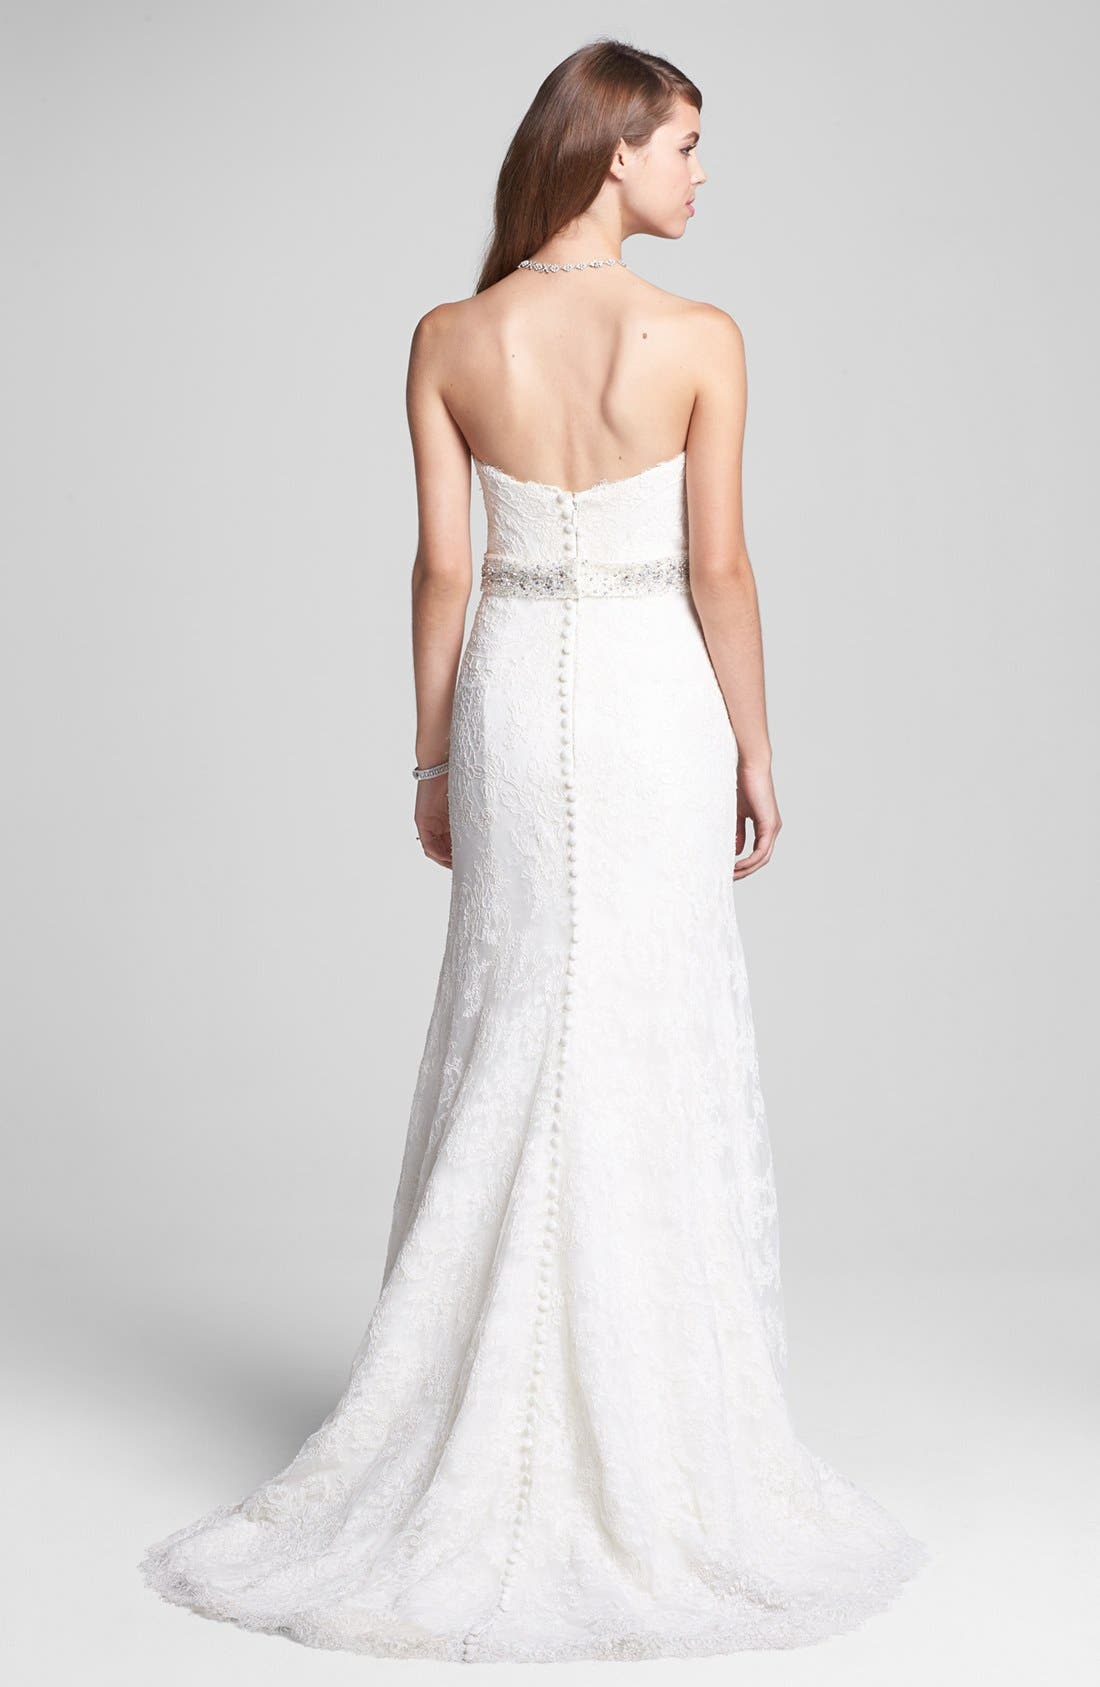 Alternate Image 2  - BLISS Monique Lhuillier Strapless Lace Wedding Dress with Beaded Waist (In Stores Only)